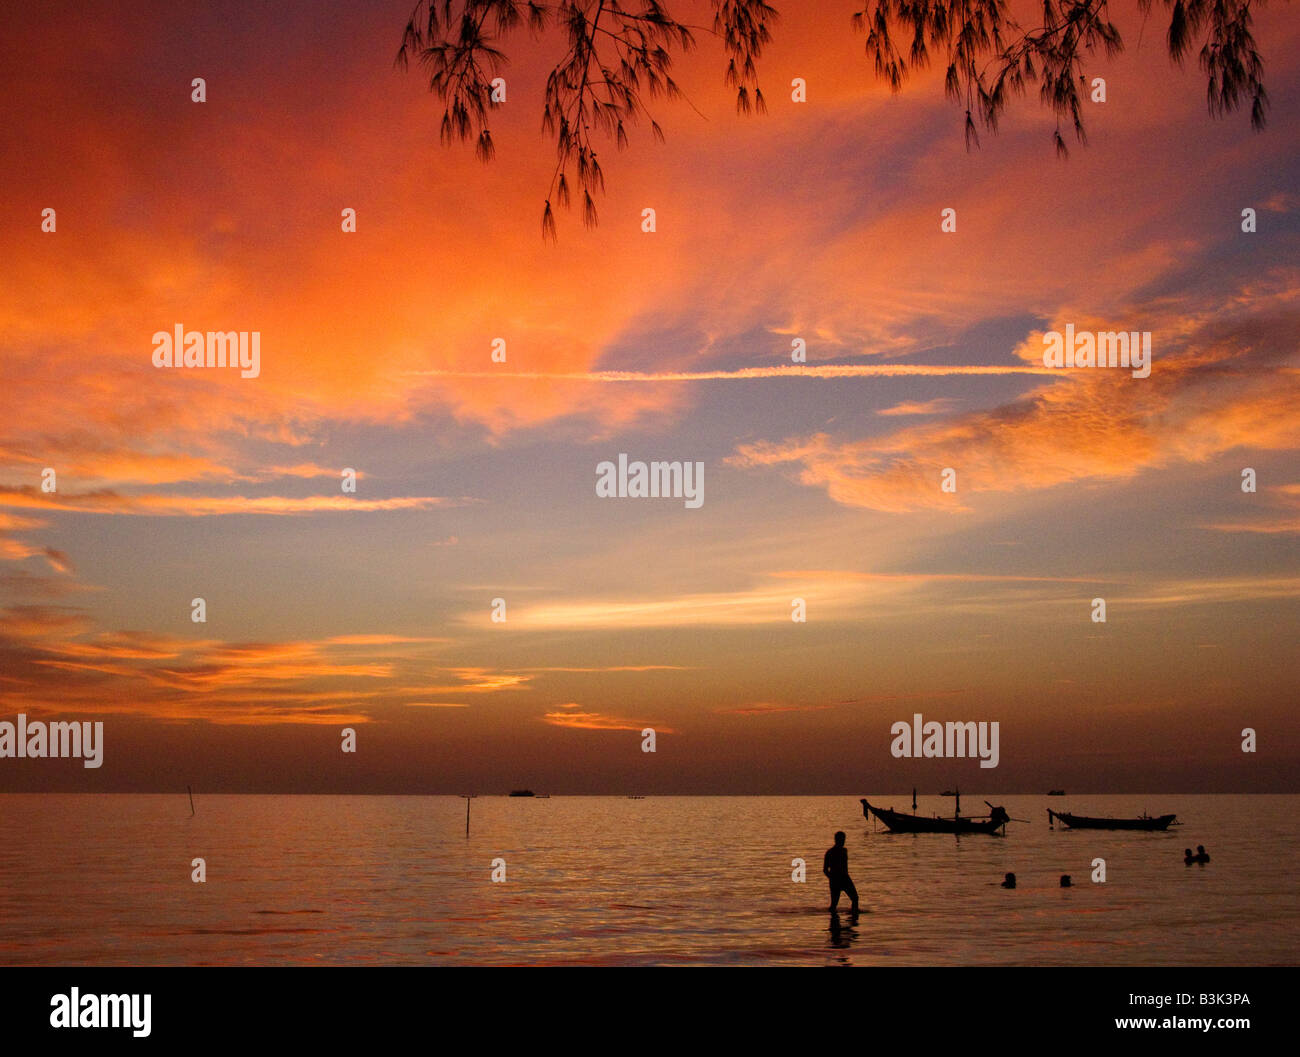 Sunset on Sairee beach, Koh Tao, thailand - Stock Image